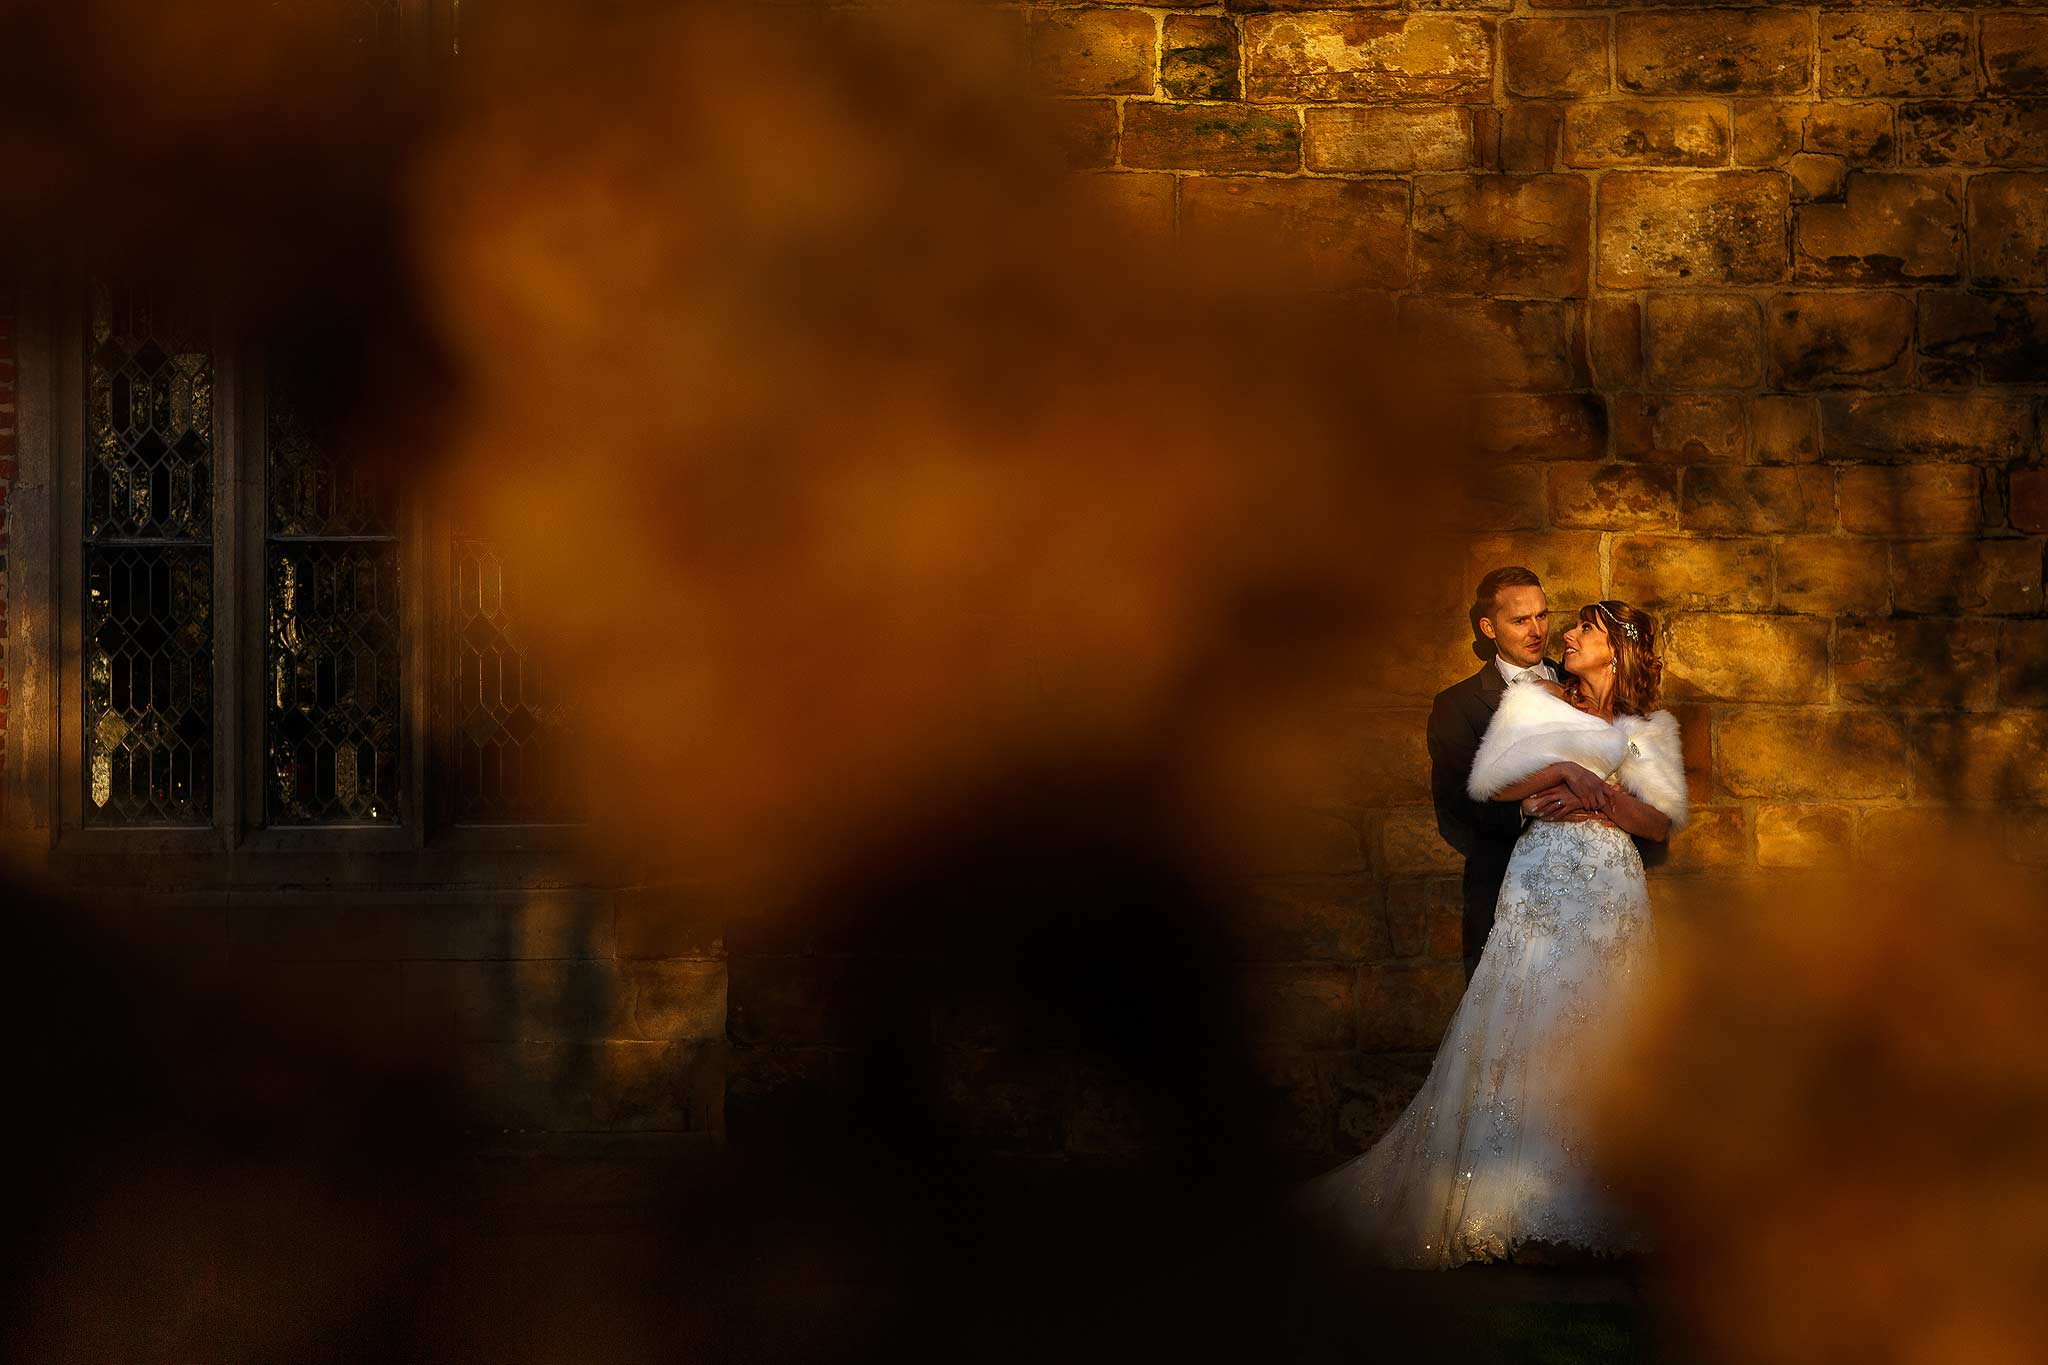 Photograph of a bride and groom laughing in the rose garden at Samlesbury Hall